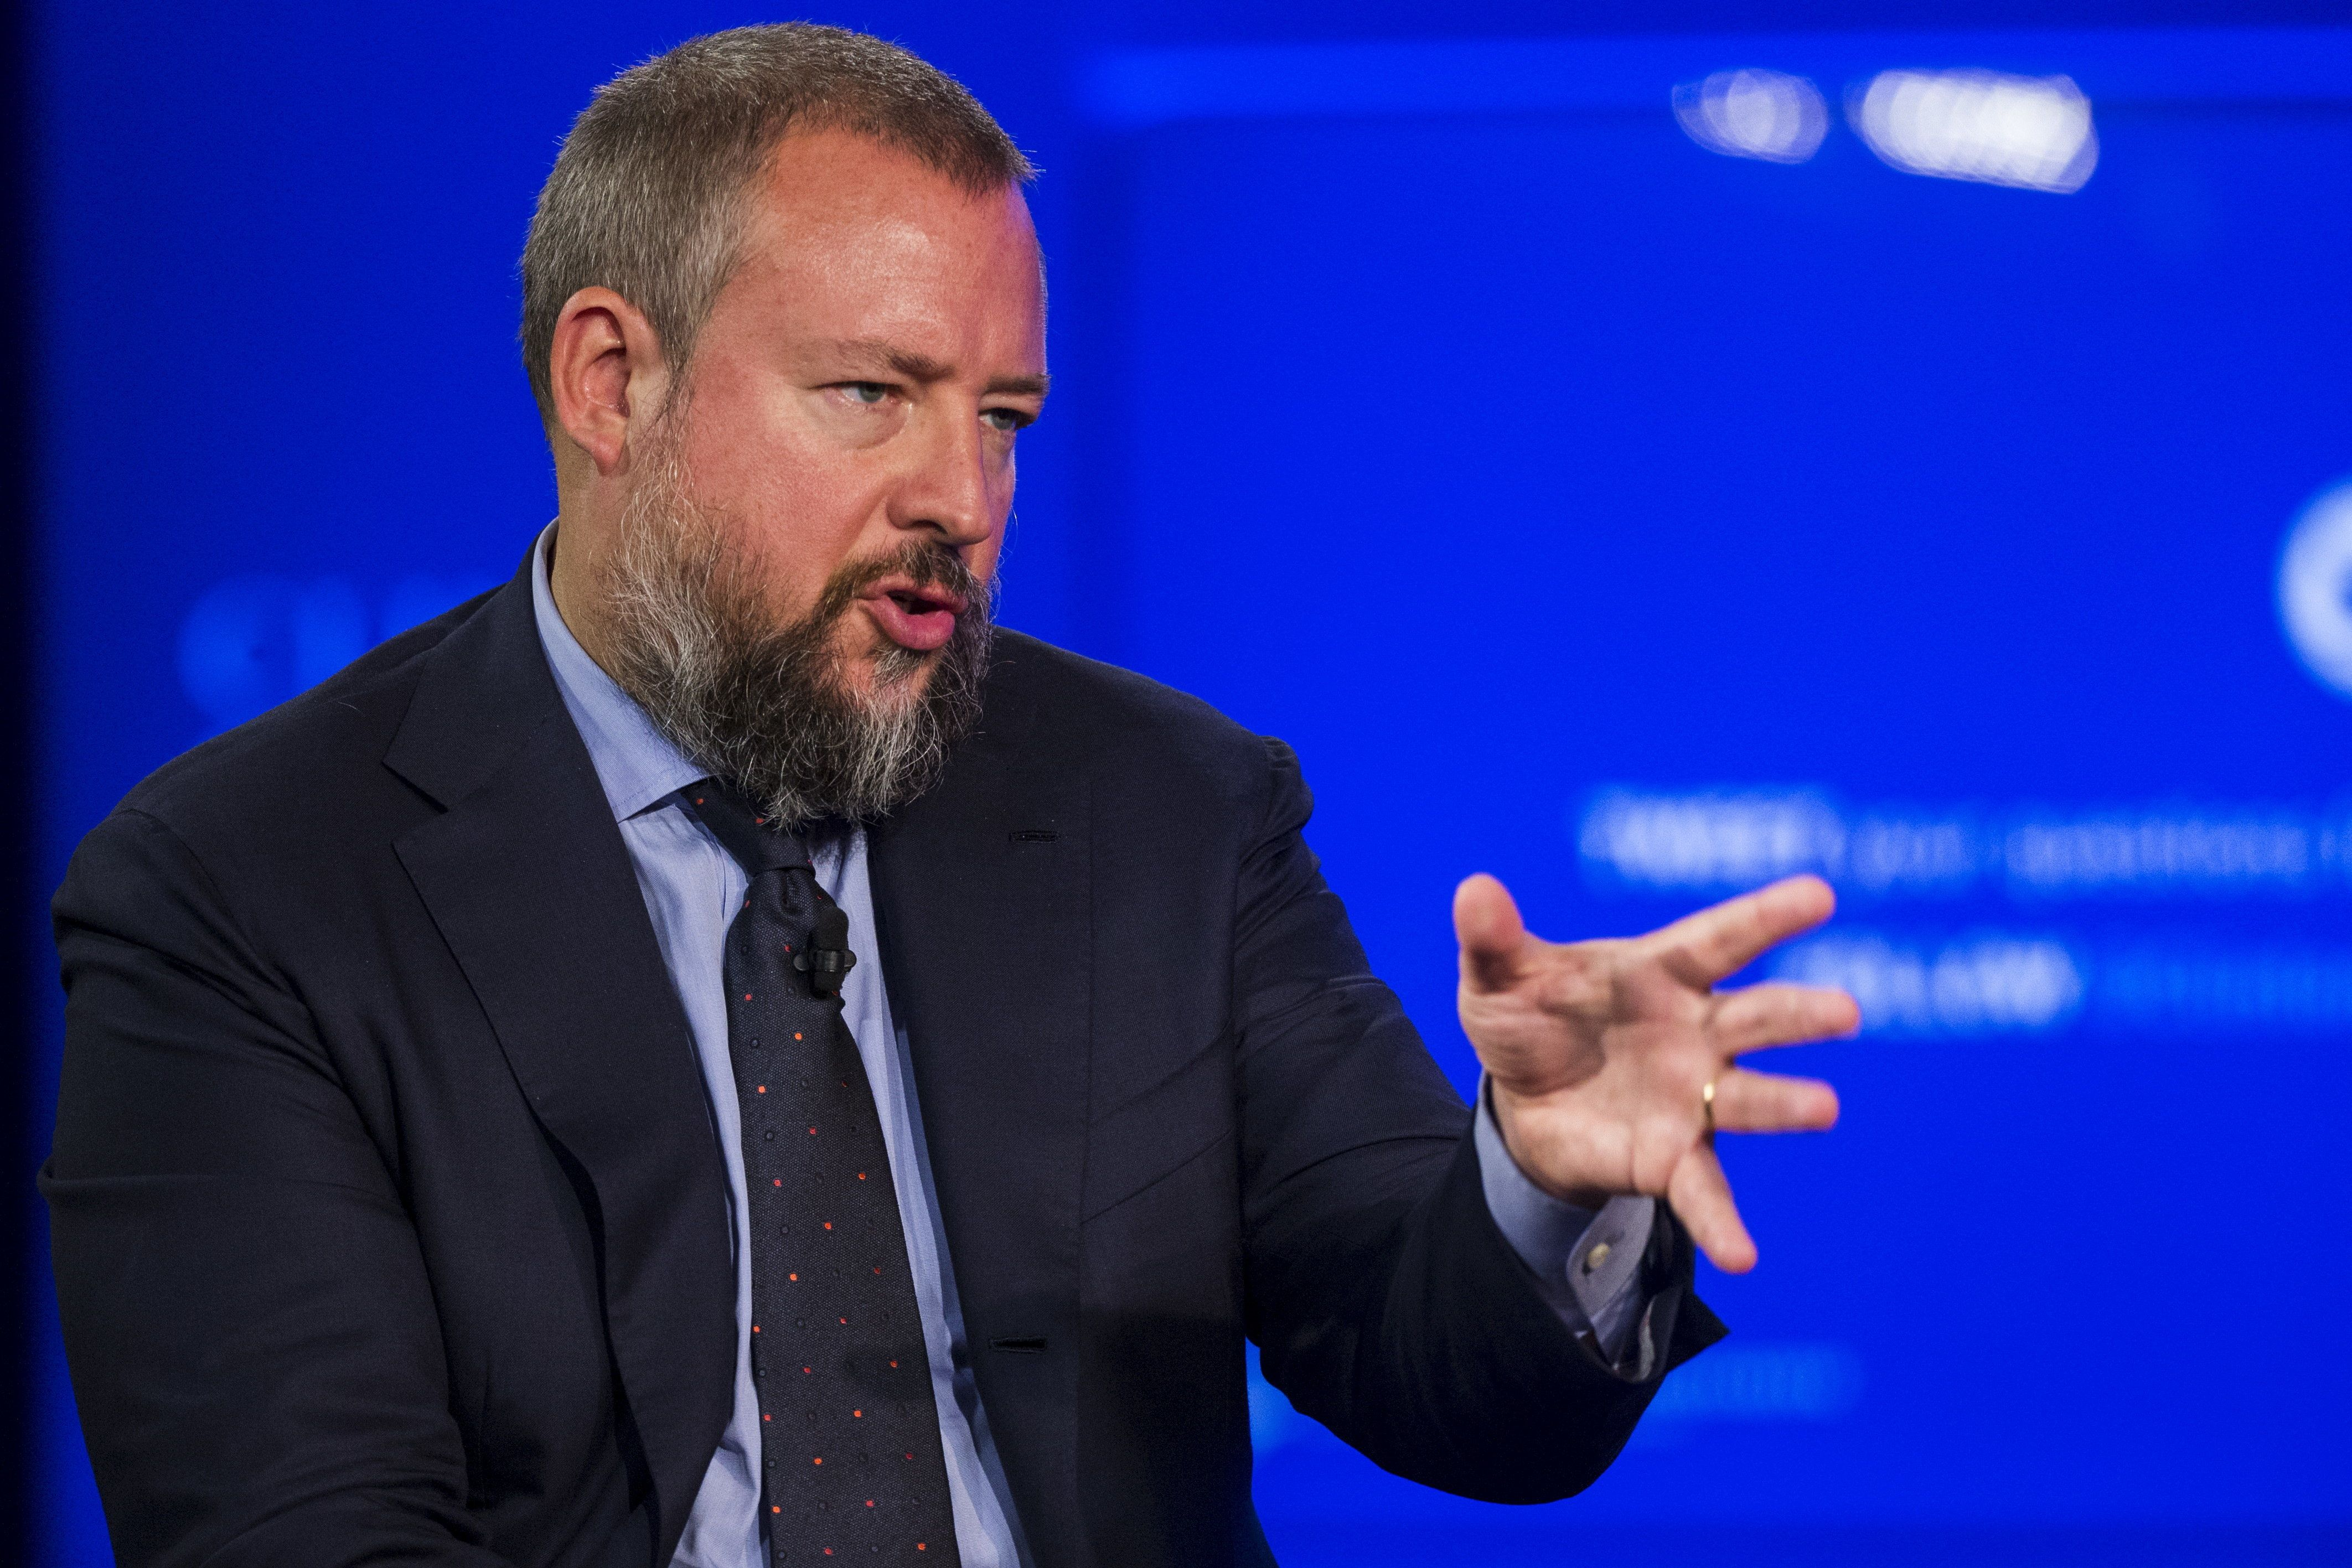 Journalist and CEO of Vice News, Shane Smith, moderates a session on sustainable oceans during the Clinton Global Initiative's annual meeting in New York, September 28, 2015.  REUTERS/Lucas Jackson